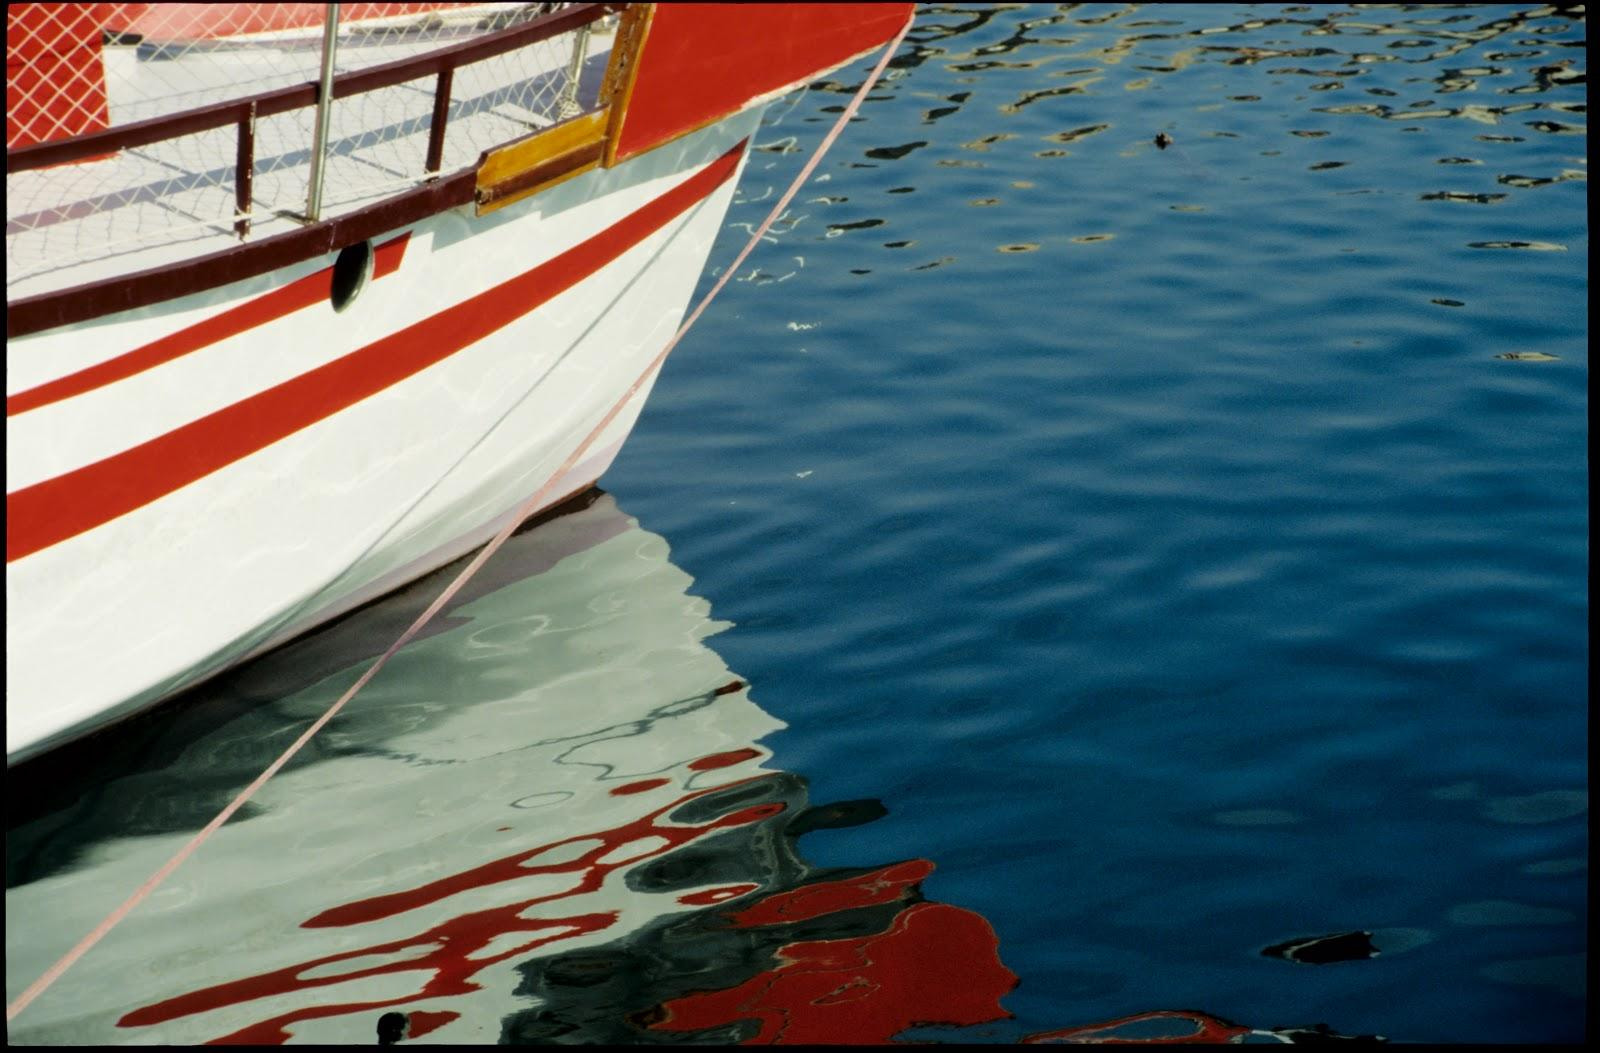 Photograph Corse Boat in Harbor by Jürgen Keil on 500px